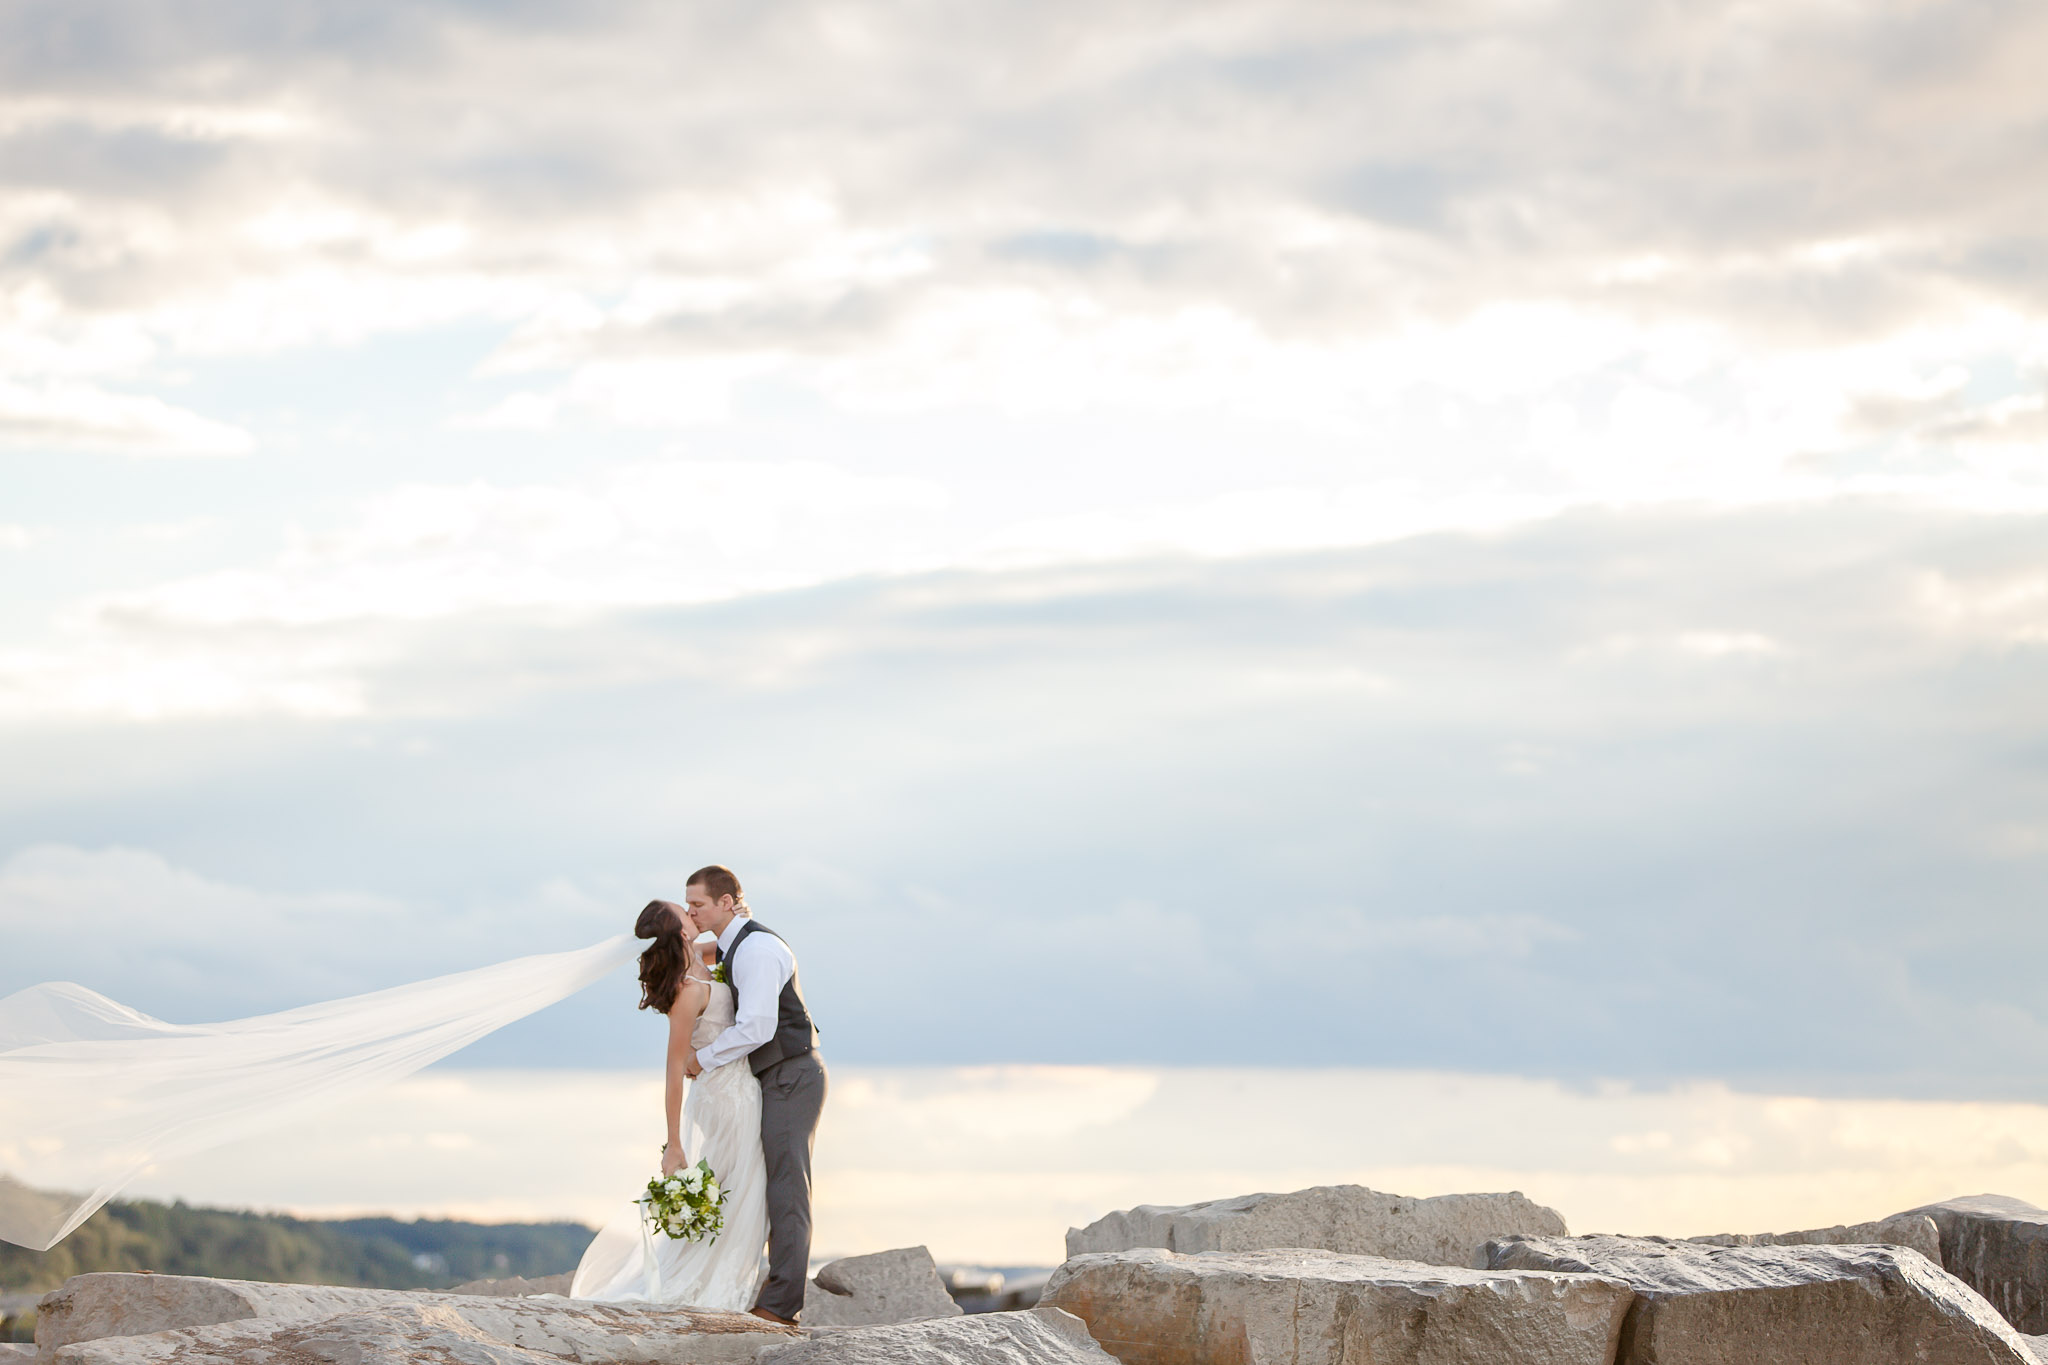 Couple Kissing in New Buffalo Beach - New Buffalo Michigan Wedding Photographer - Toni Jay Photography